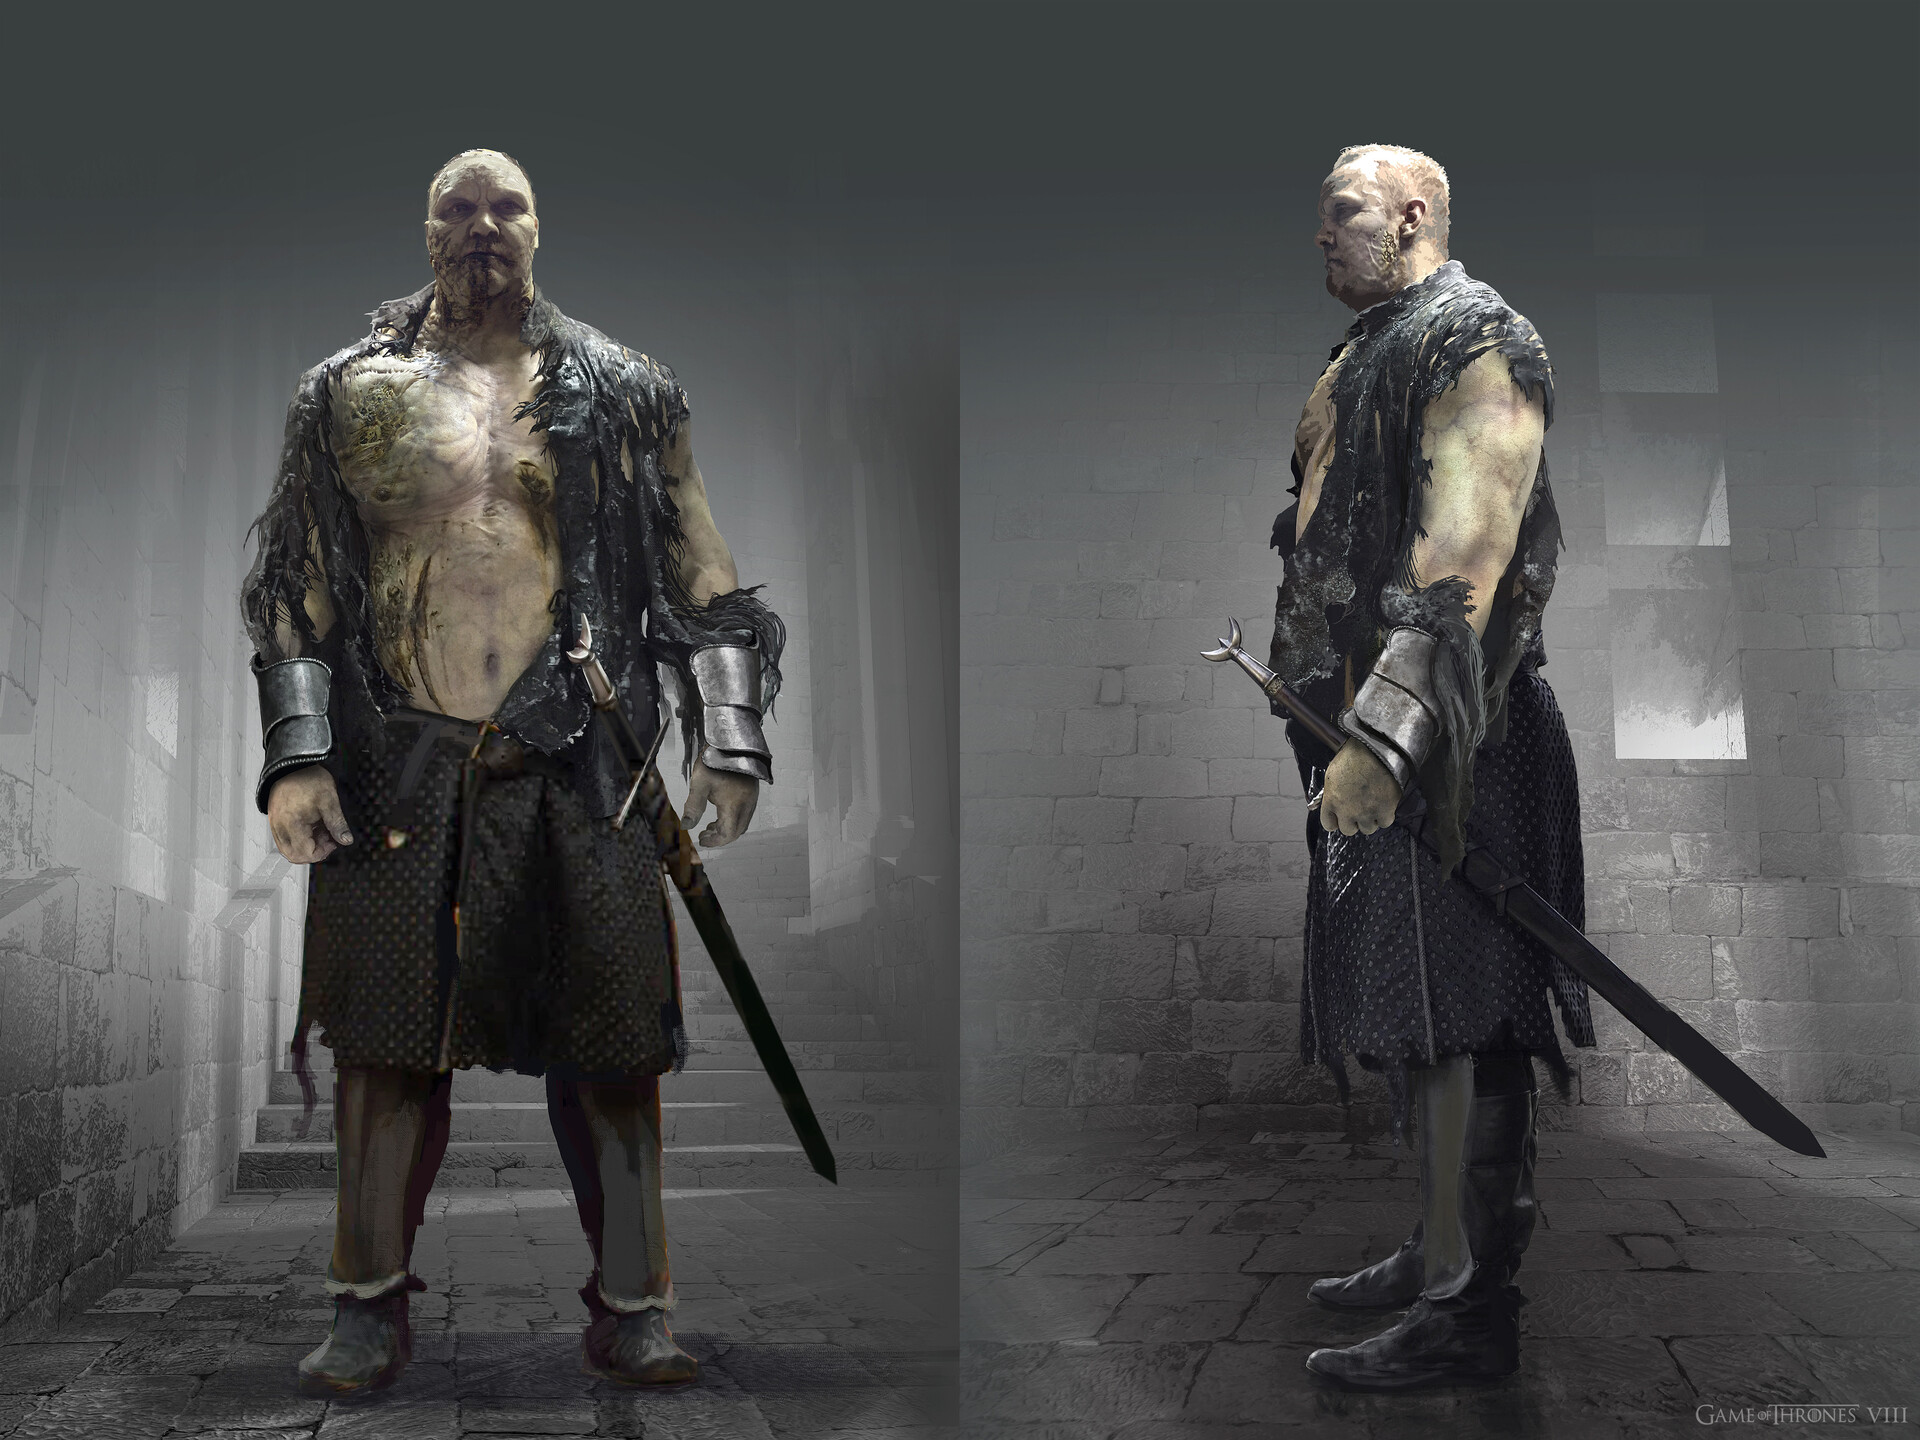 Working with Producer Bernie Caulfield I produced this concept for how The Mountain would look after tearing off his Armour